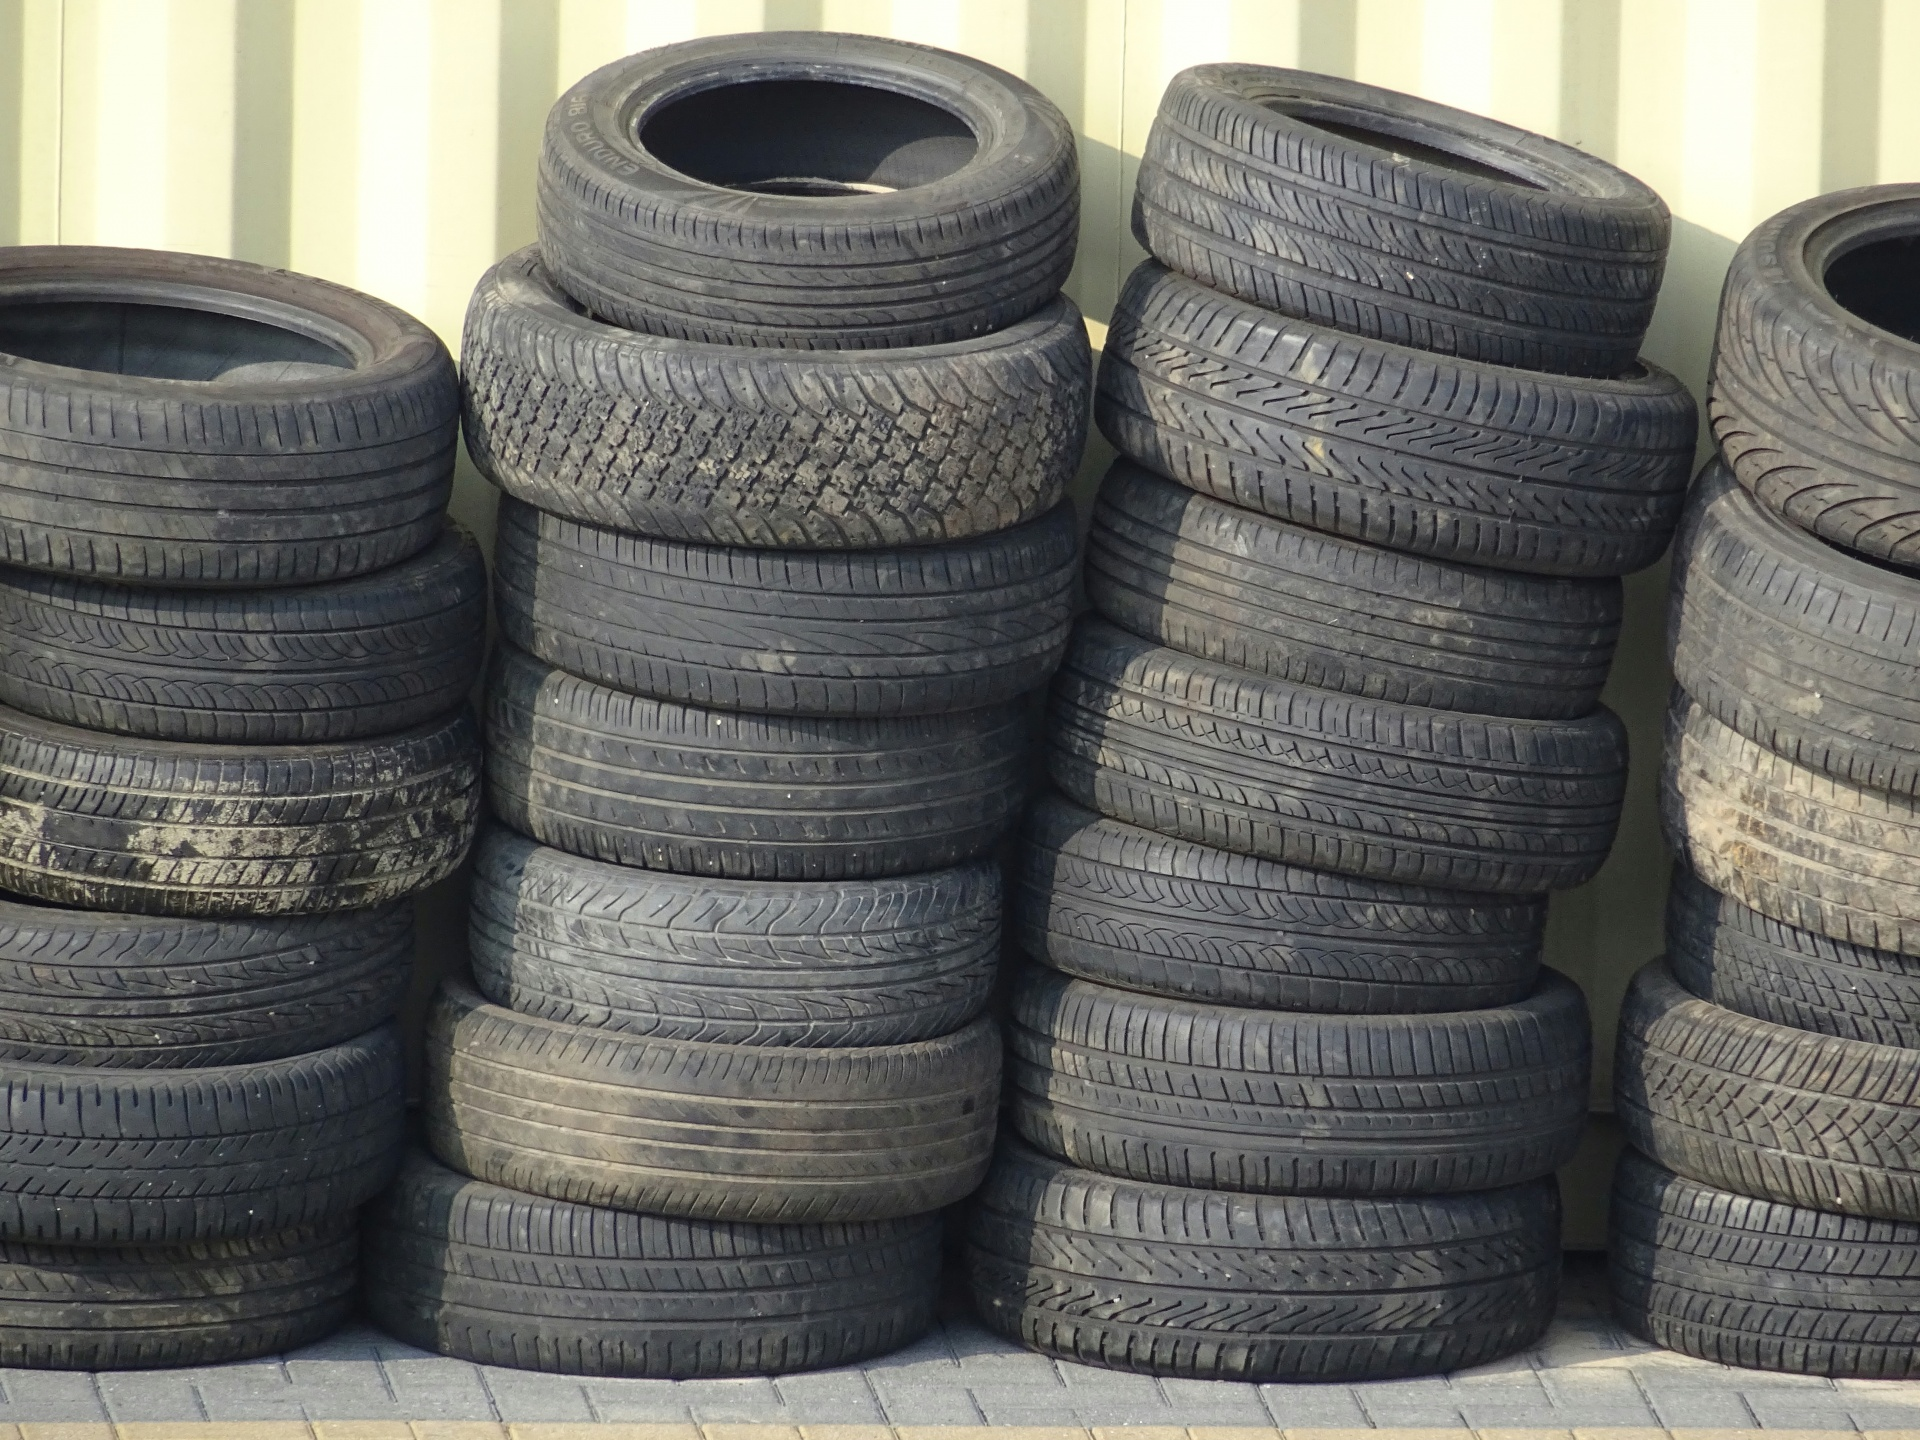 Free Wallpaper Old Cars Old Used Tires Free Stock Photo Public Domain Pictures